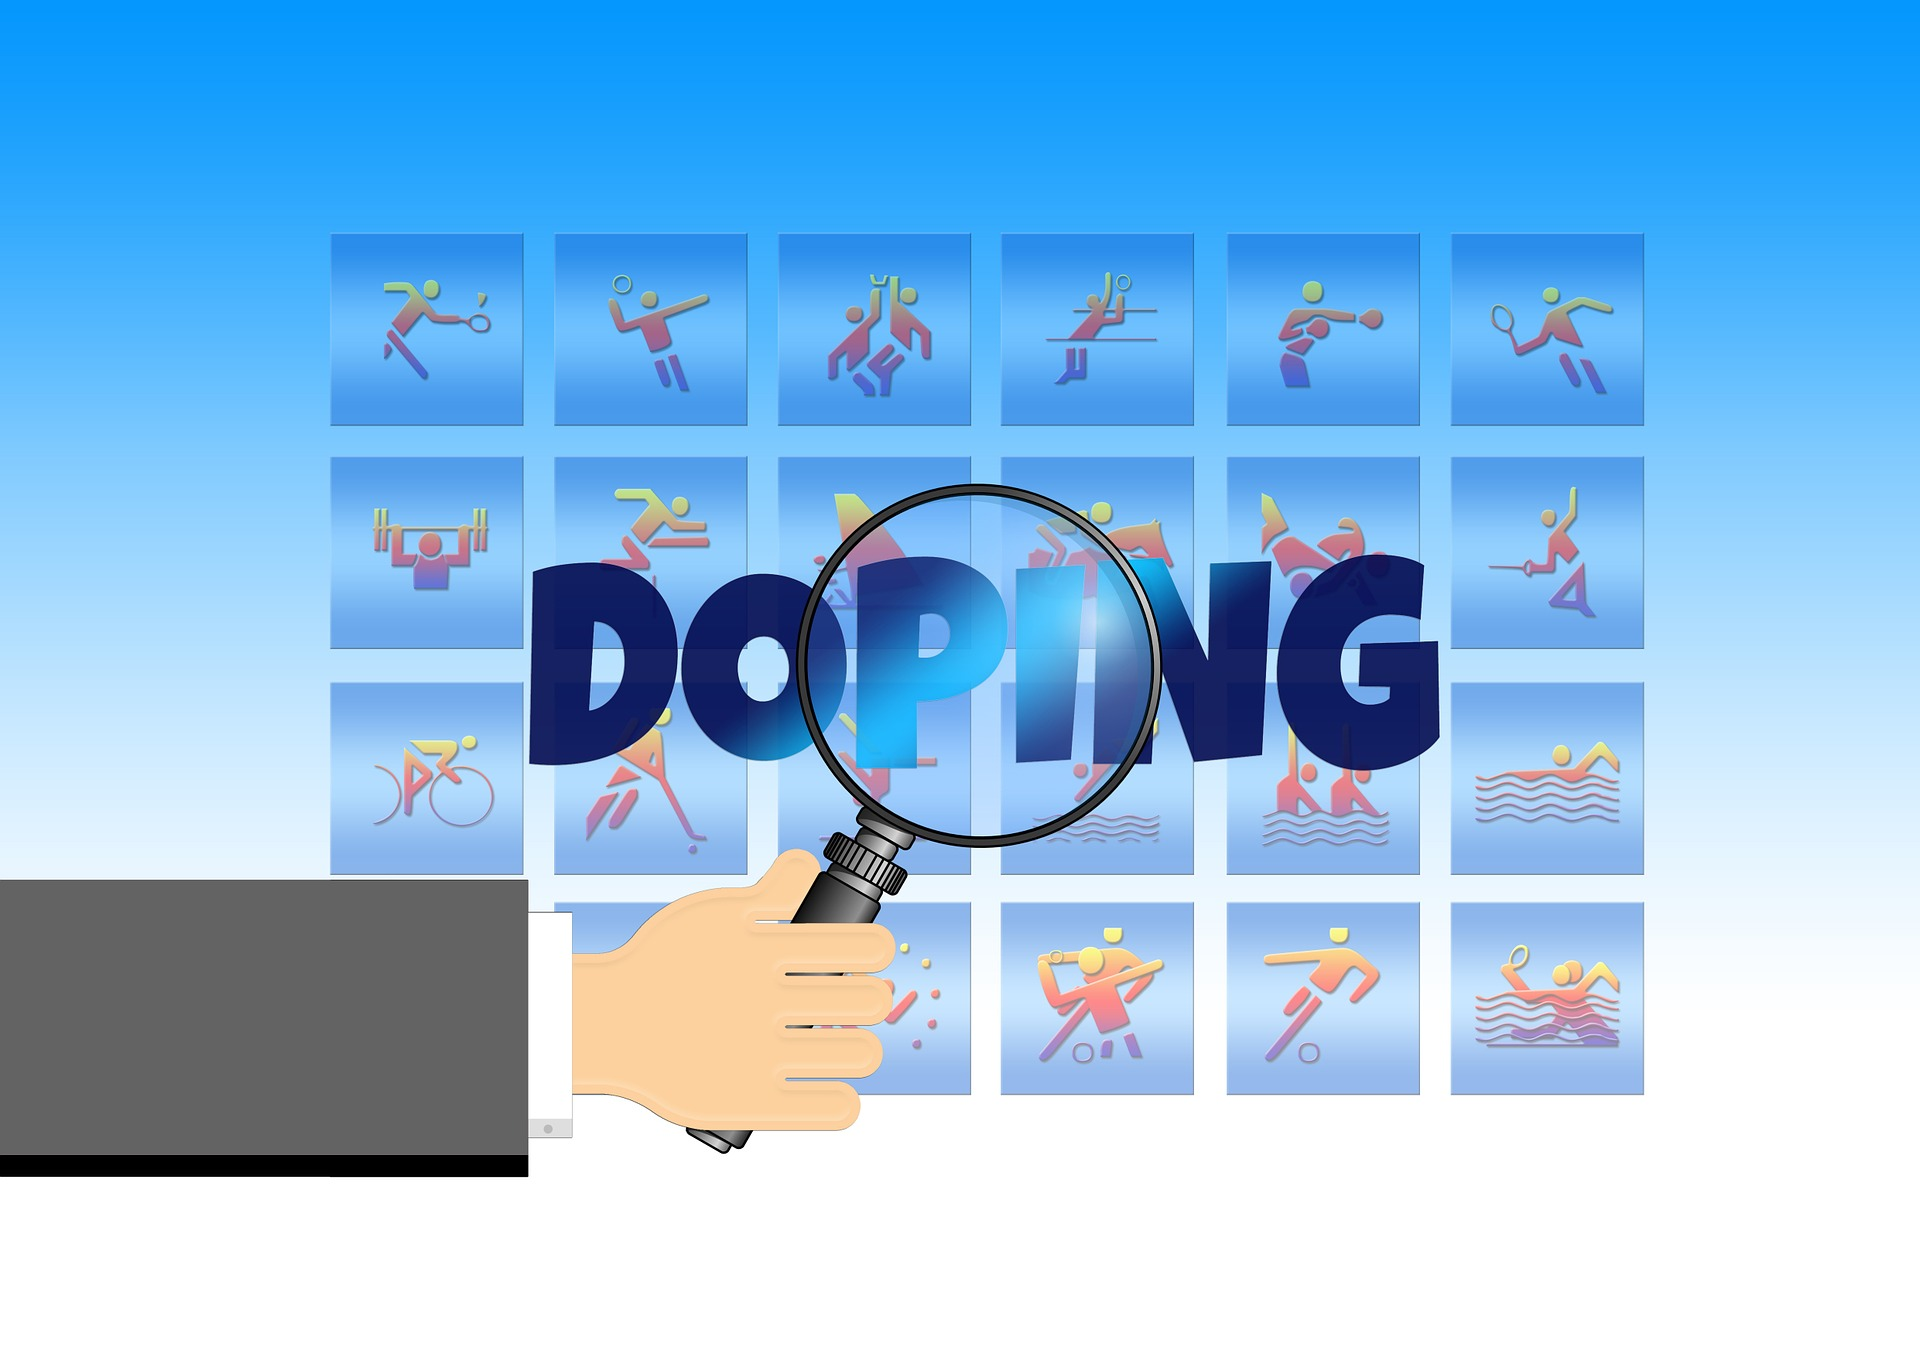 focus su doping e grandi eventi